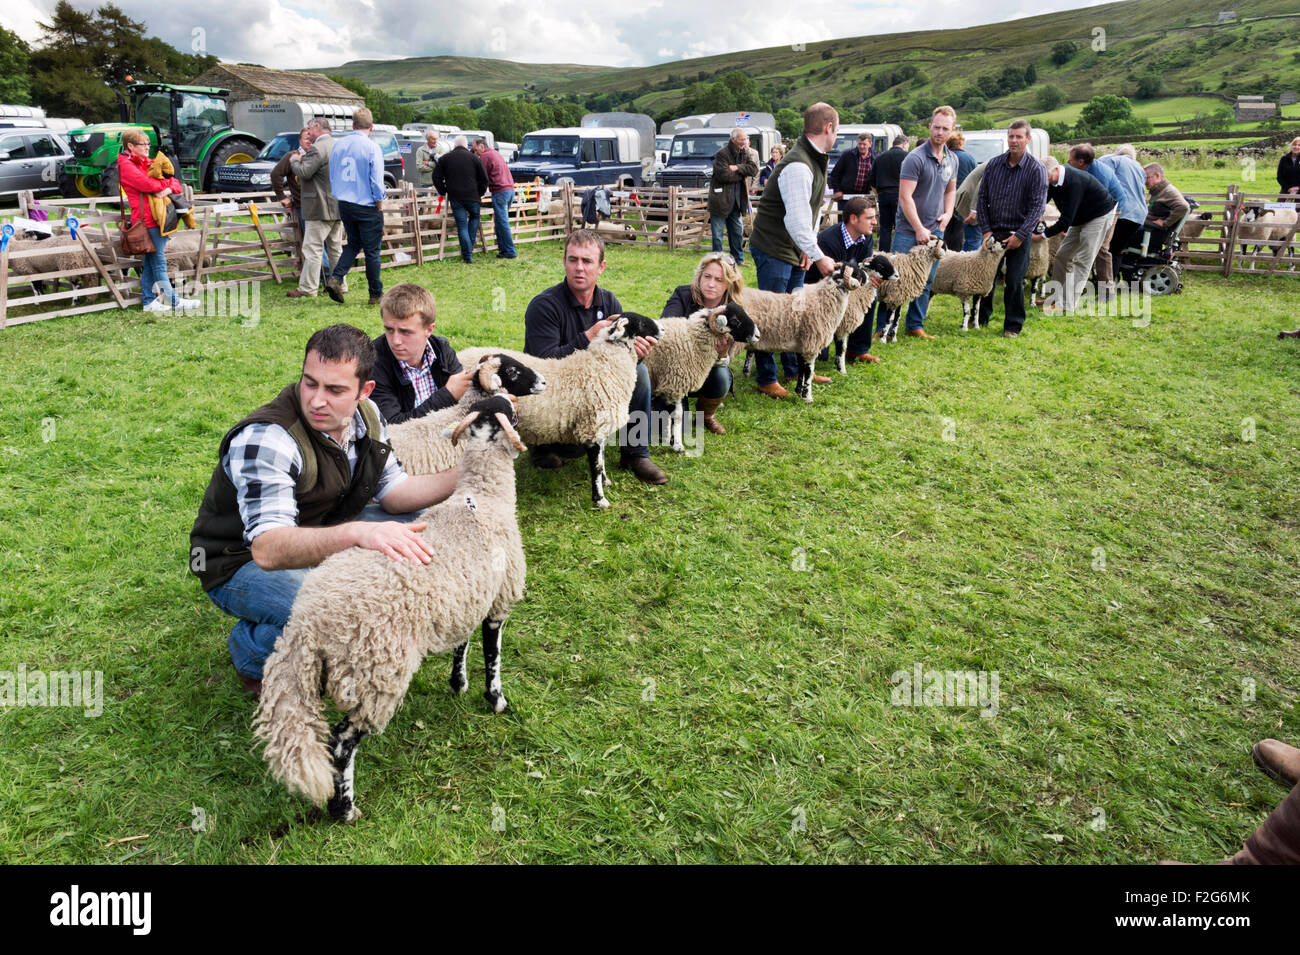 Sheep being judged, Muker Show, North Yorkshire, 2015 - Stock Image